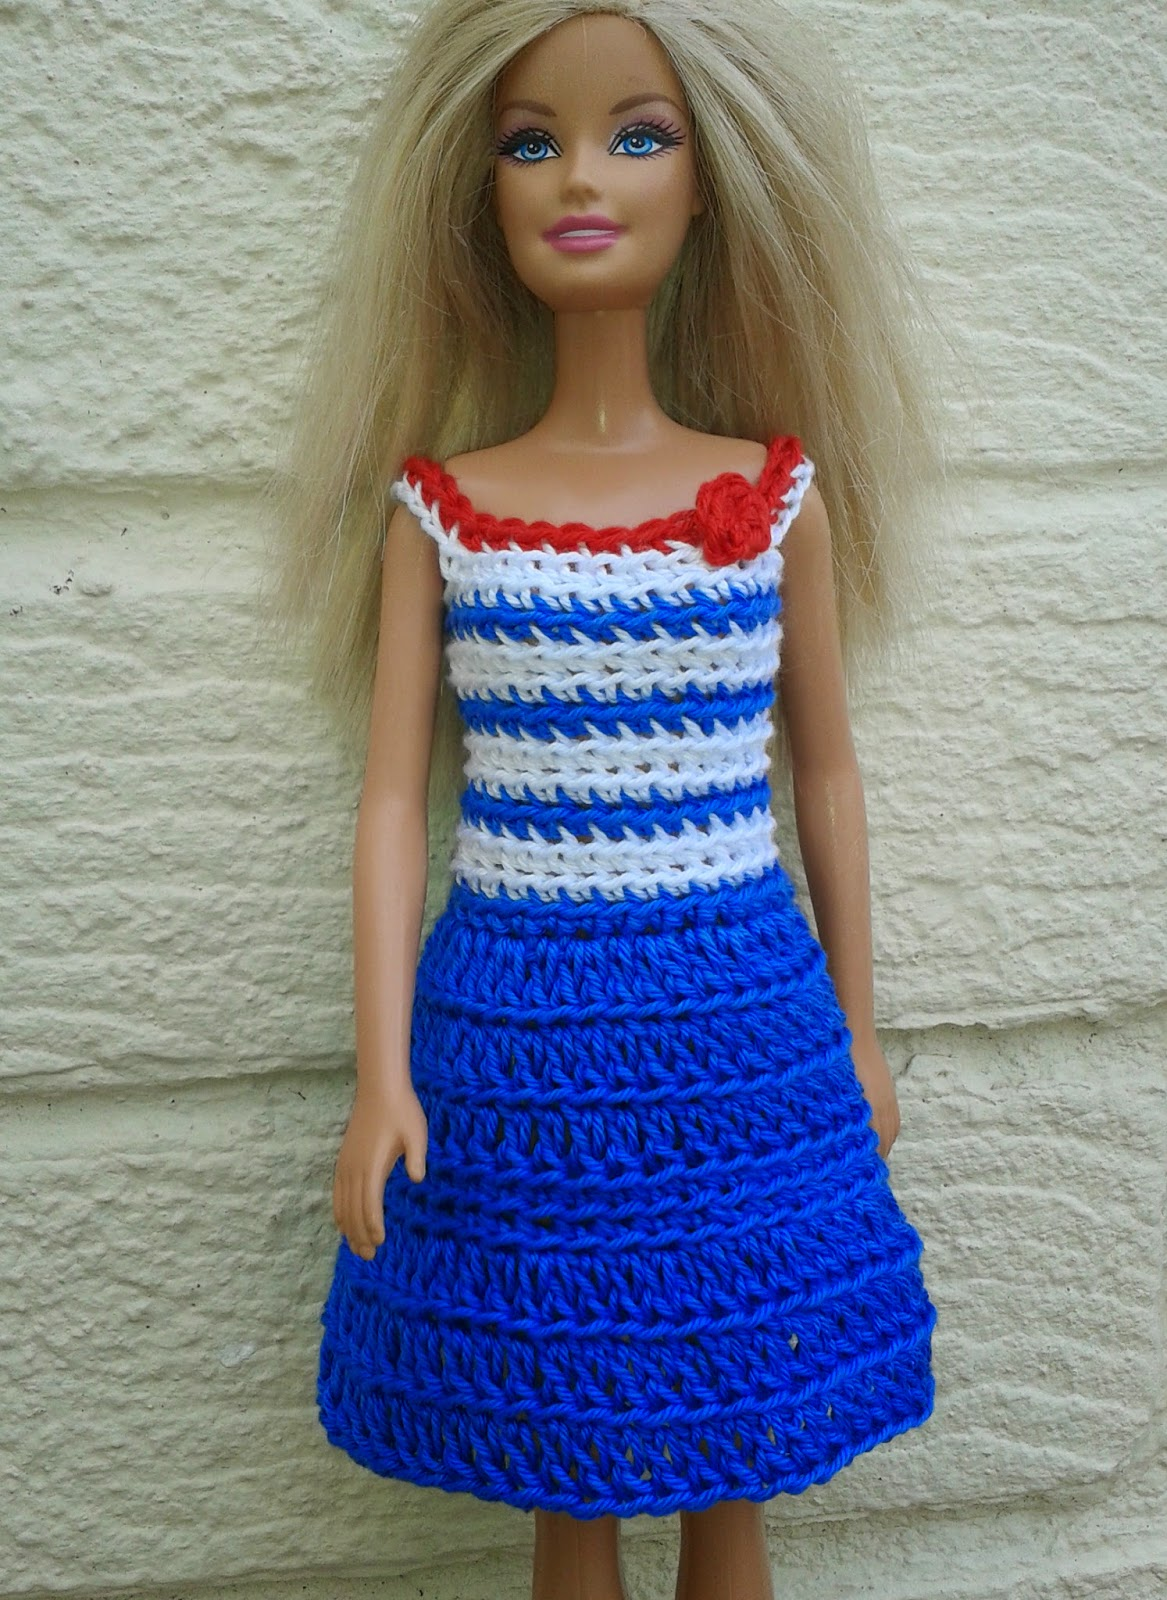 Linmary Knits: Barbie Crochet Nautical Dress